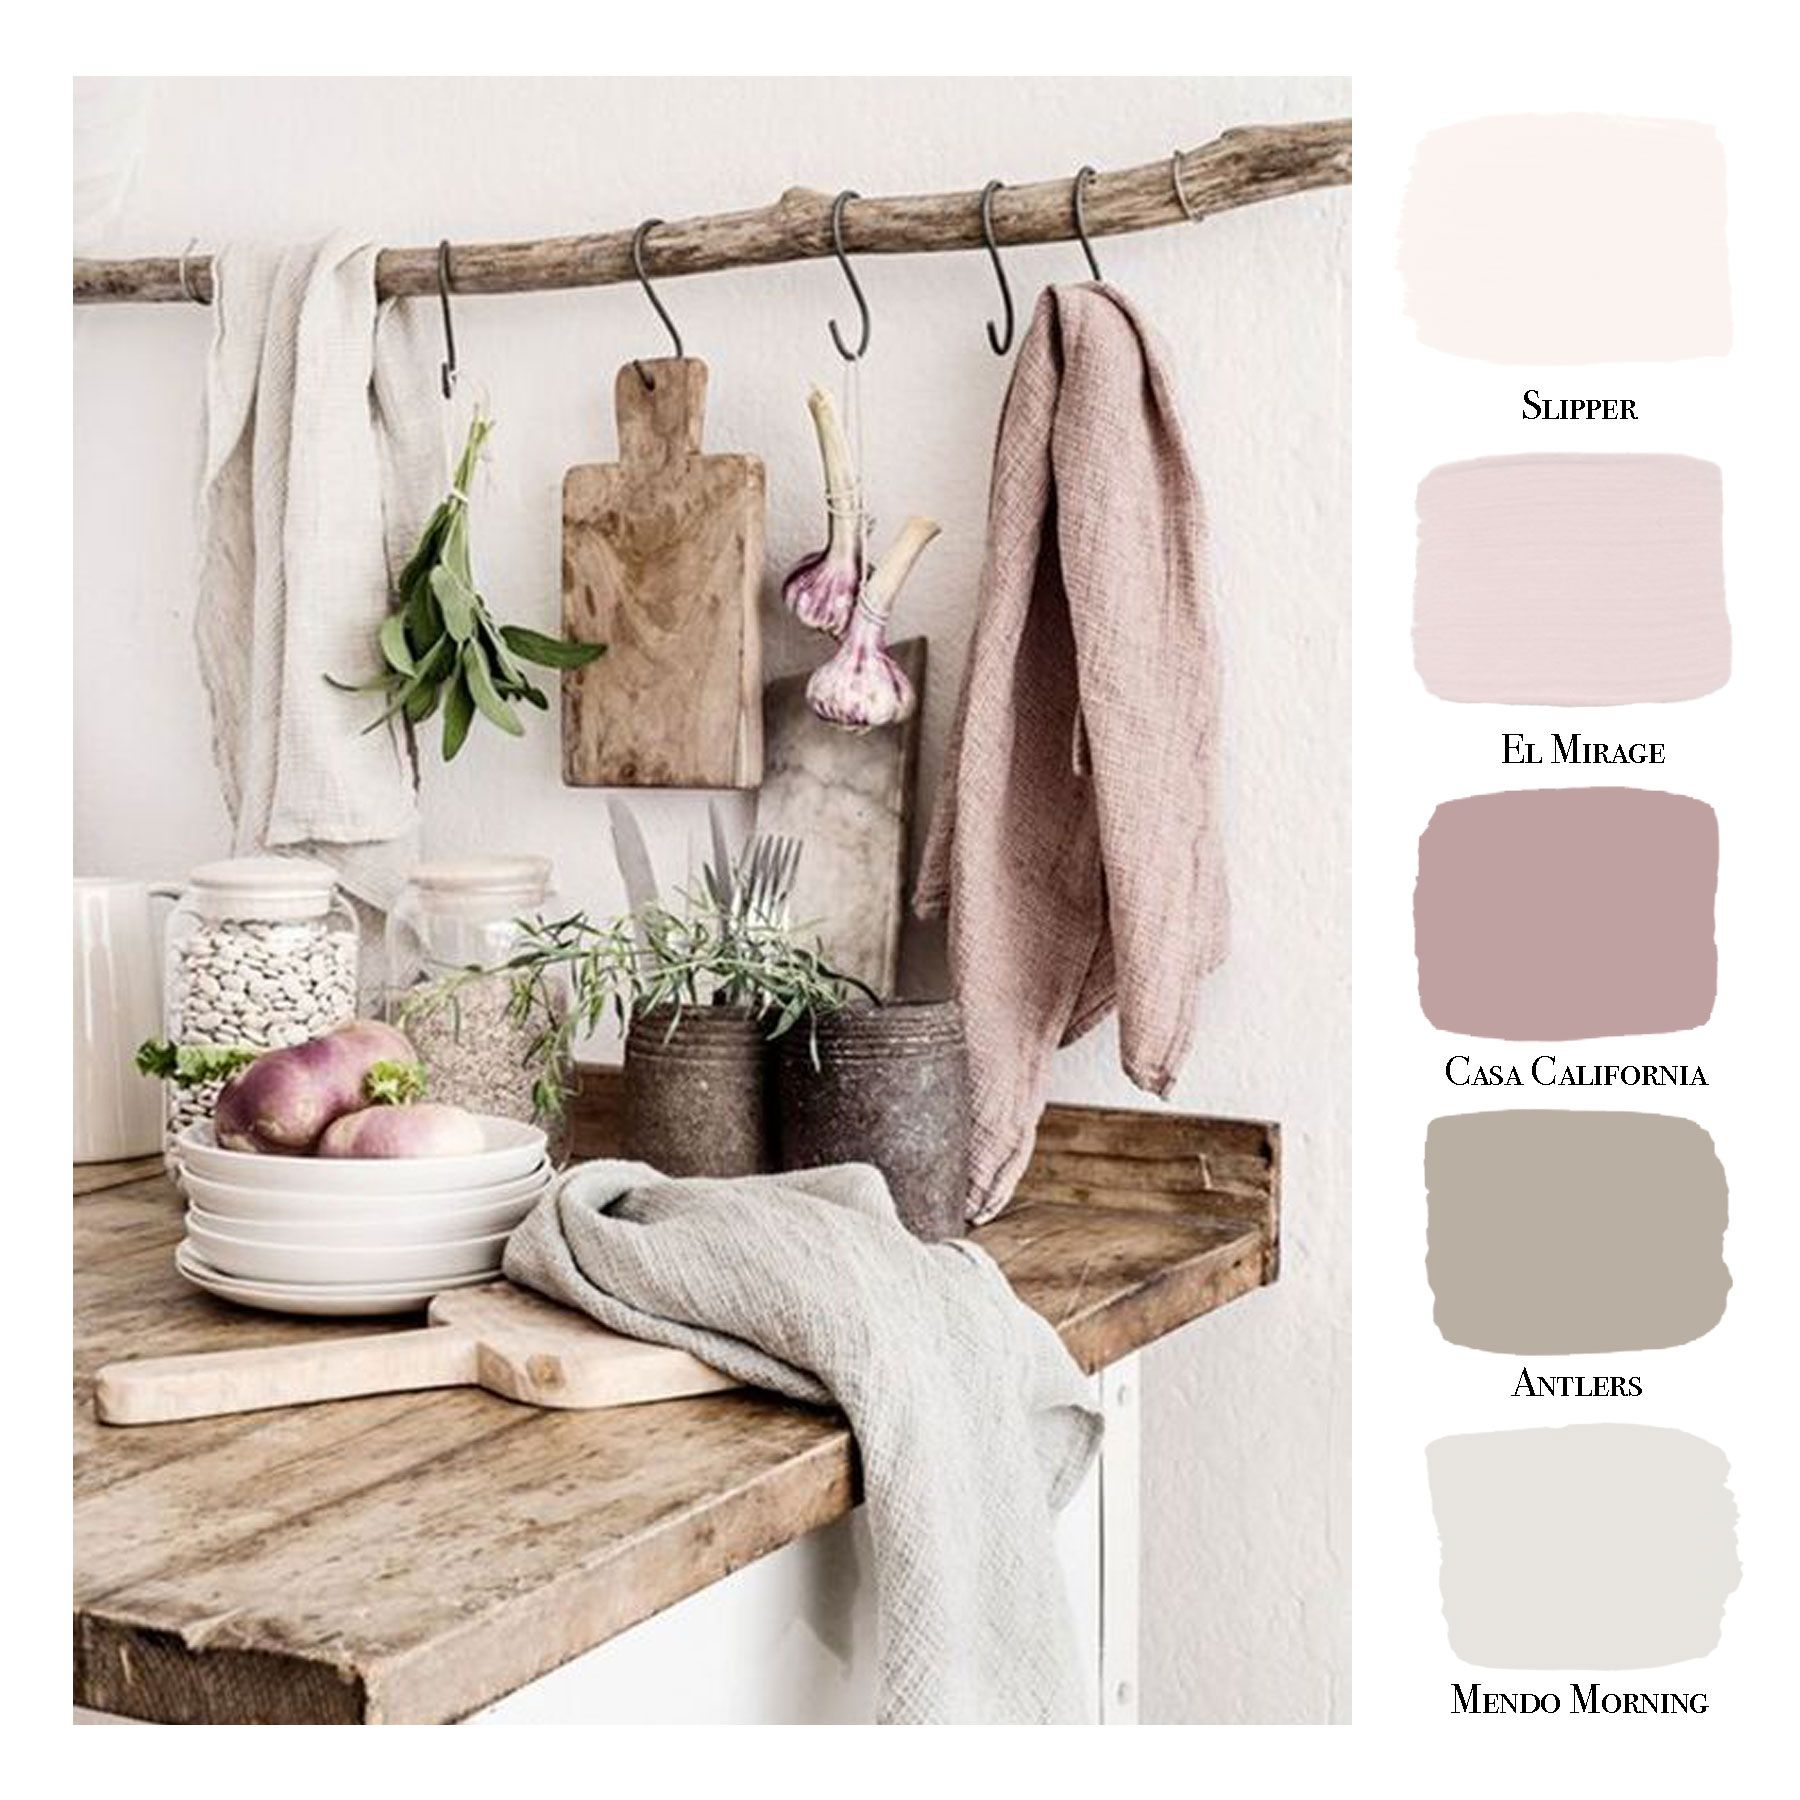 Couchtisch Country Weiß Portola Paints / Color Palette / White / Gray / Pink